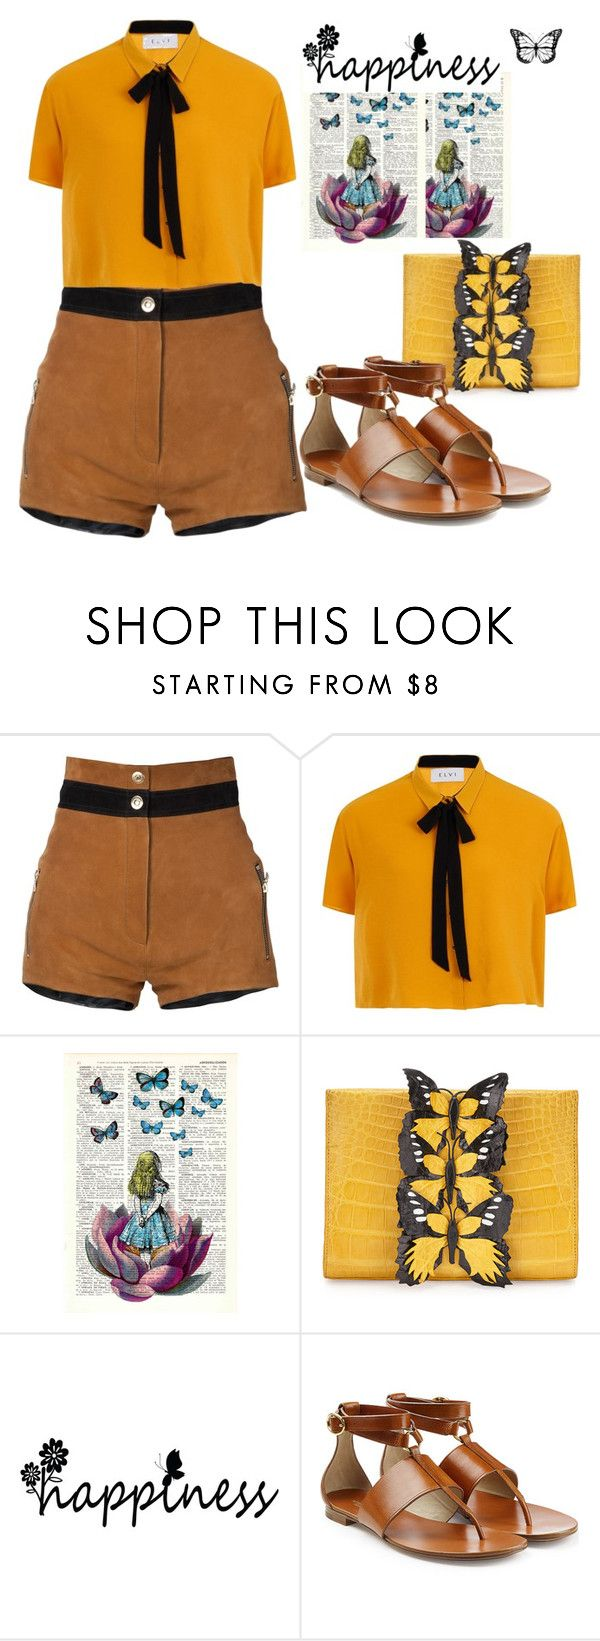 """""""Summer outfit 3 (Sunday Bbq)"""" by gladys-michelle-appleseed ❤ liked on Polyvore featuring Beau Souci, Elvi, Nancy Gonzalez and Michael Kors"""